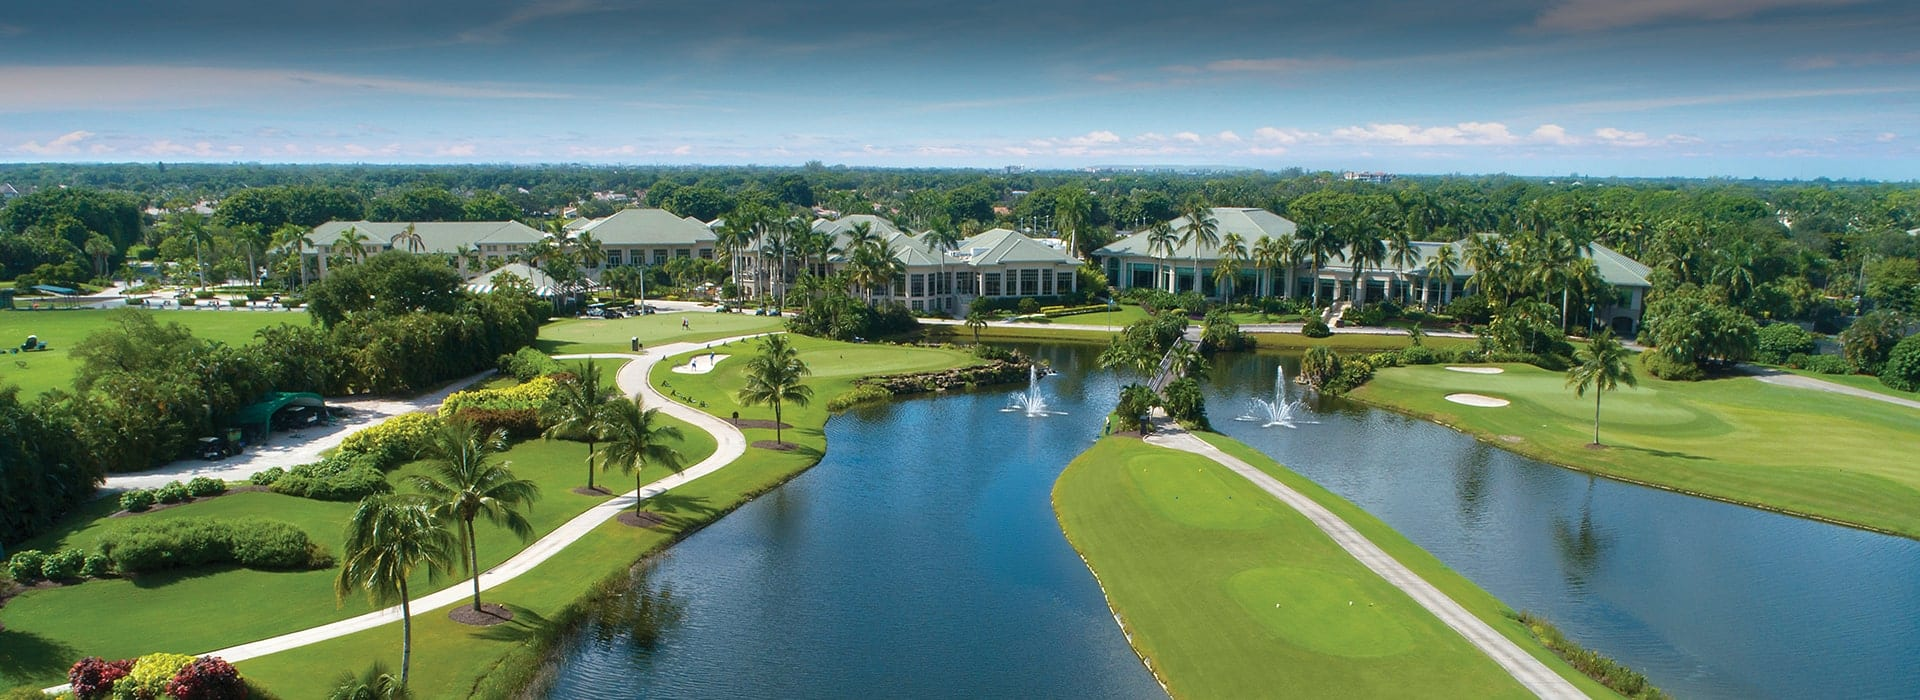 Boca West golf hole with tee boxes flanked by water on both sides